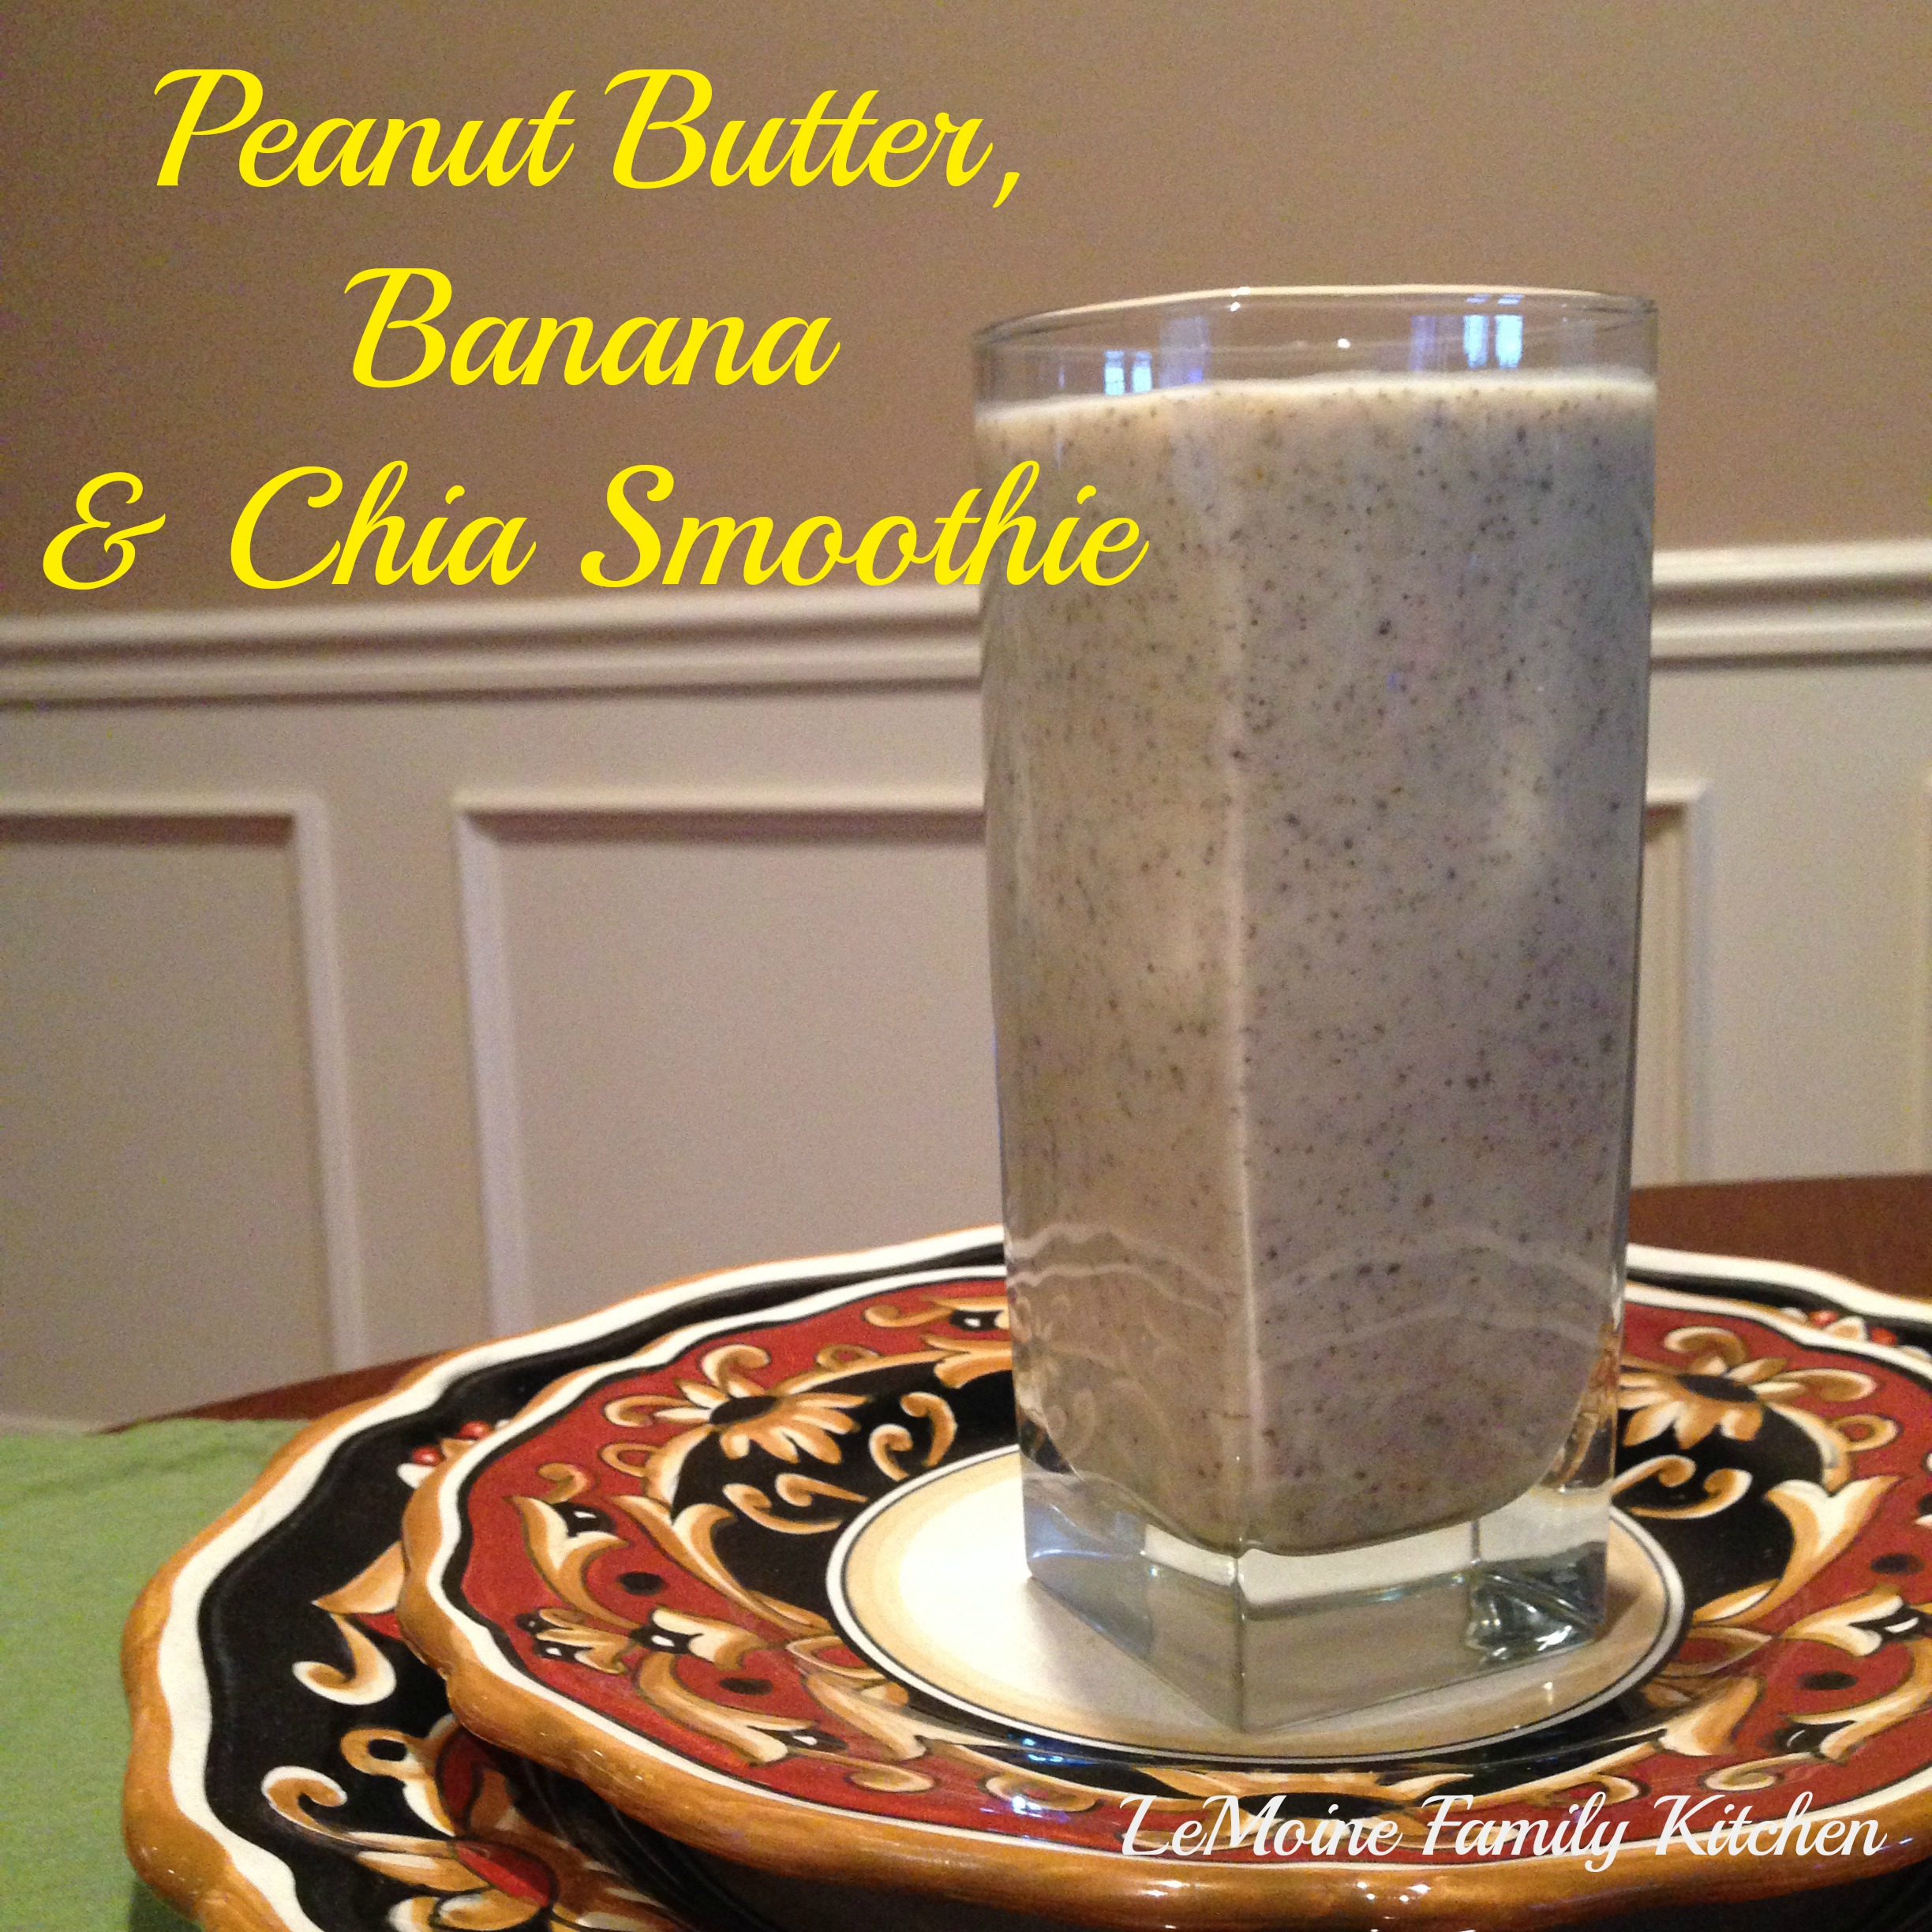 Peanut Butter, Banana & Chia Smoothie